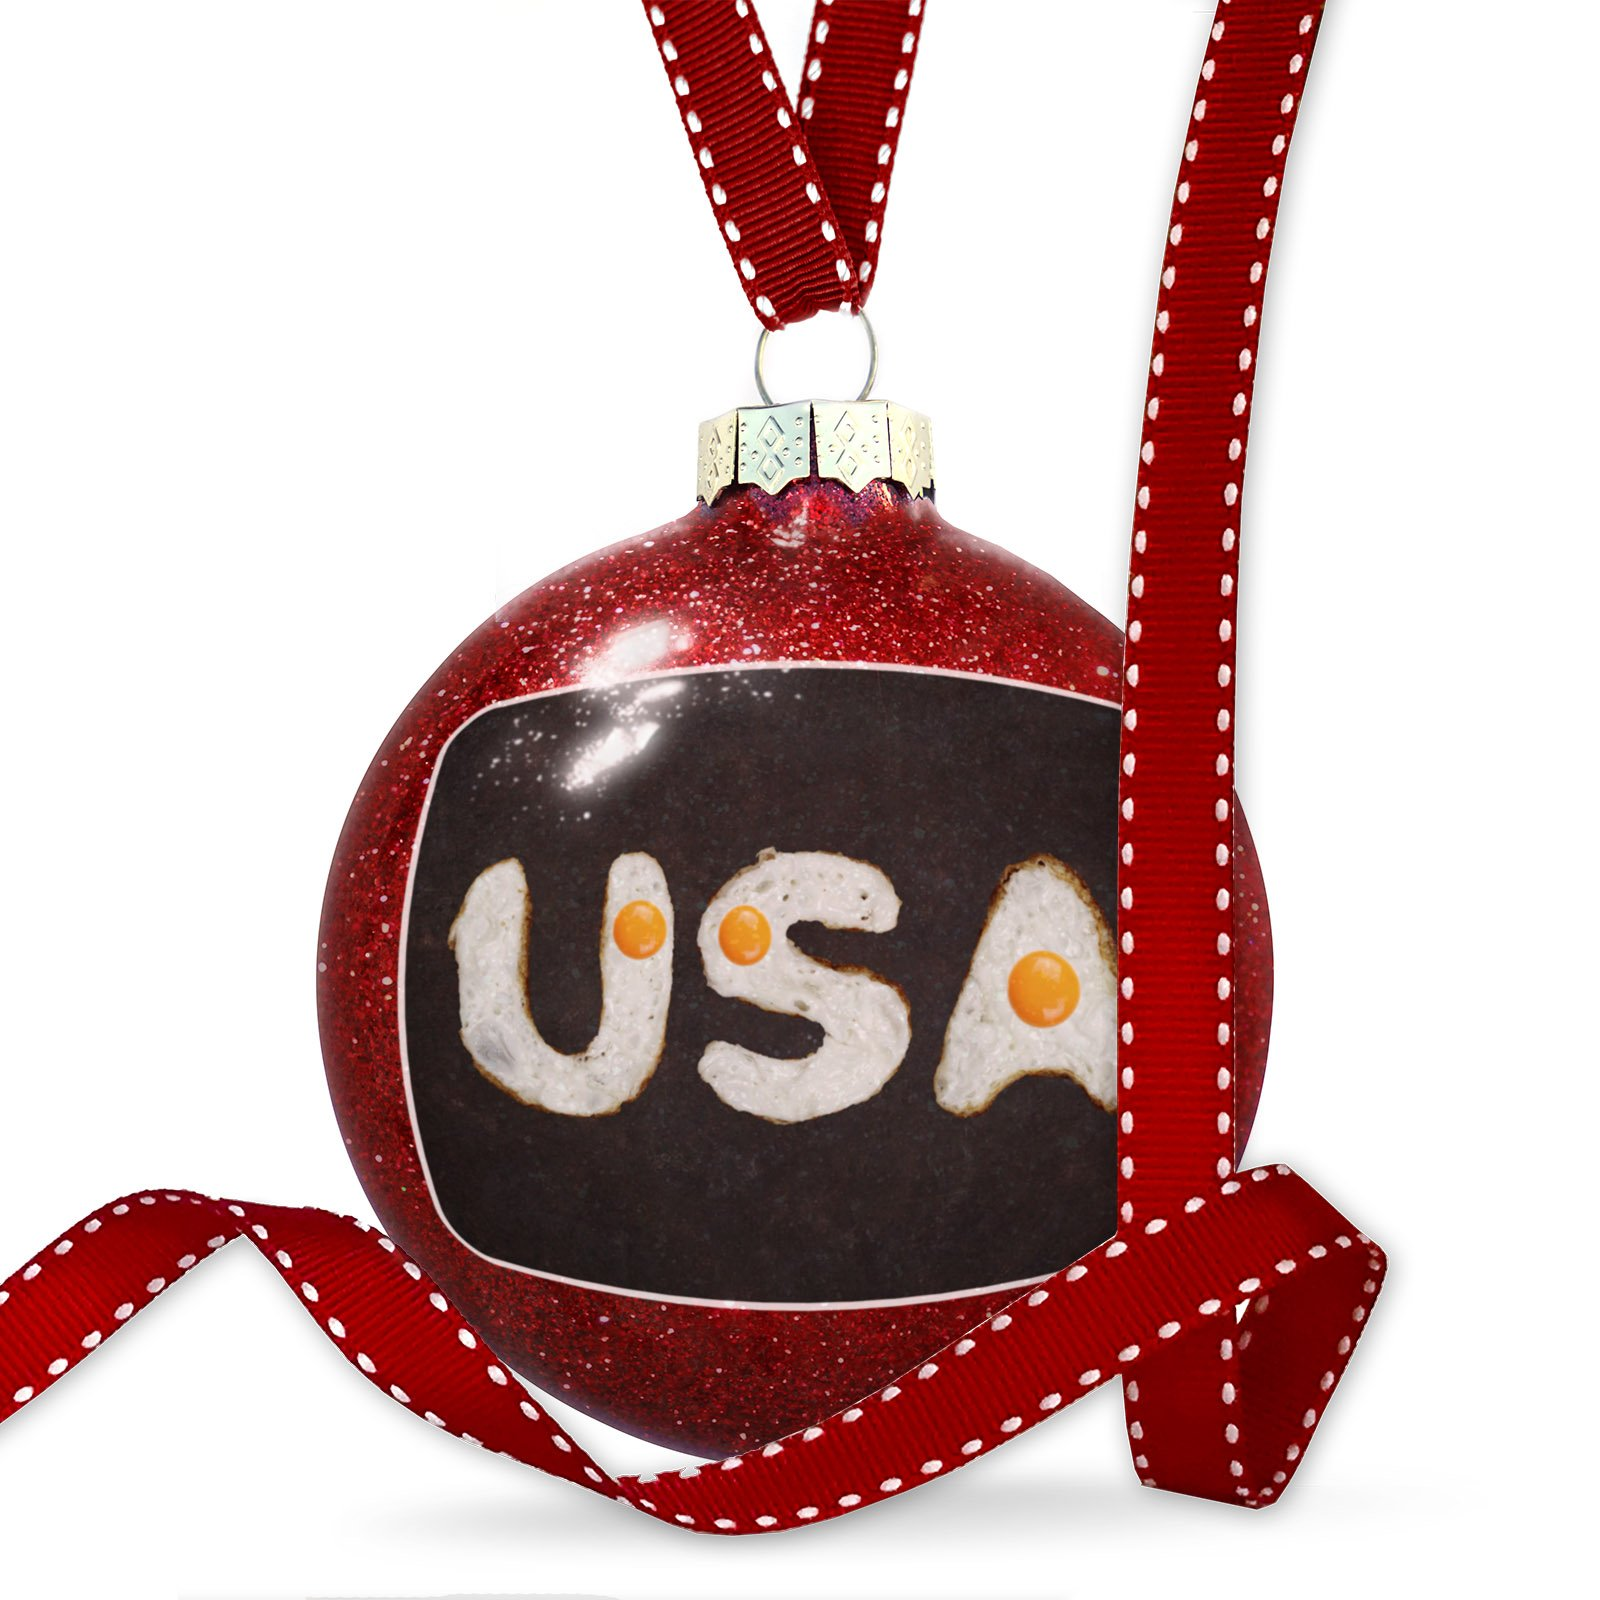 Christmas Decoration United States of America Eggs Ornament